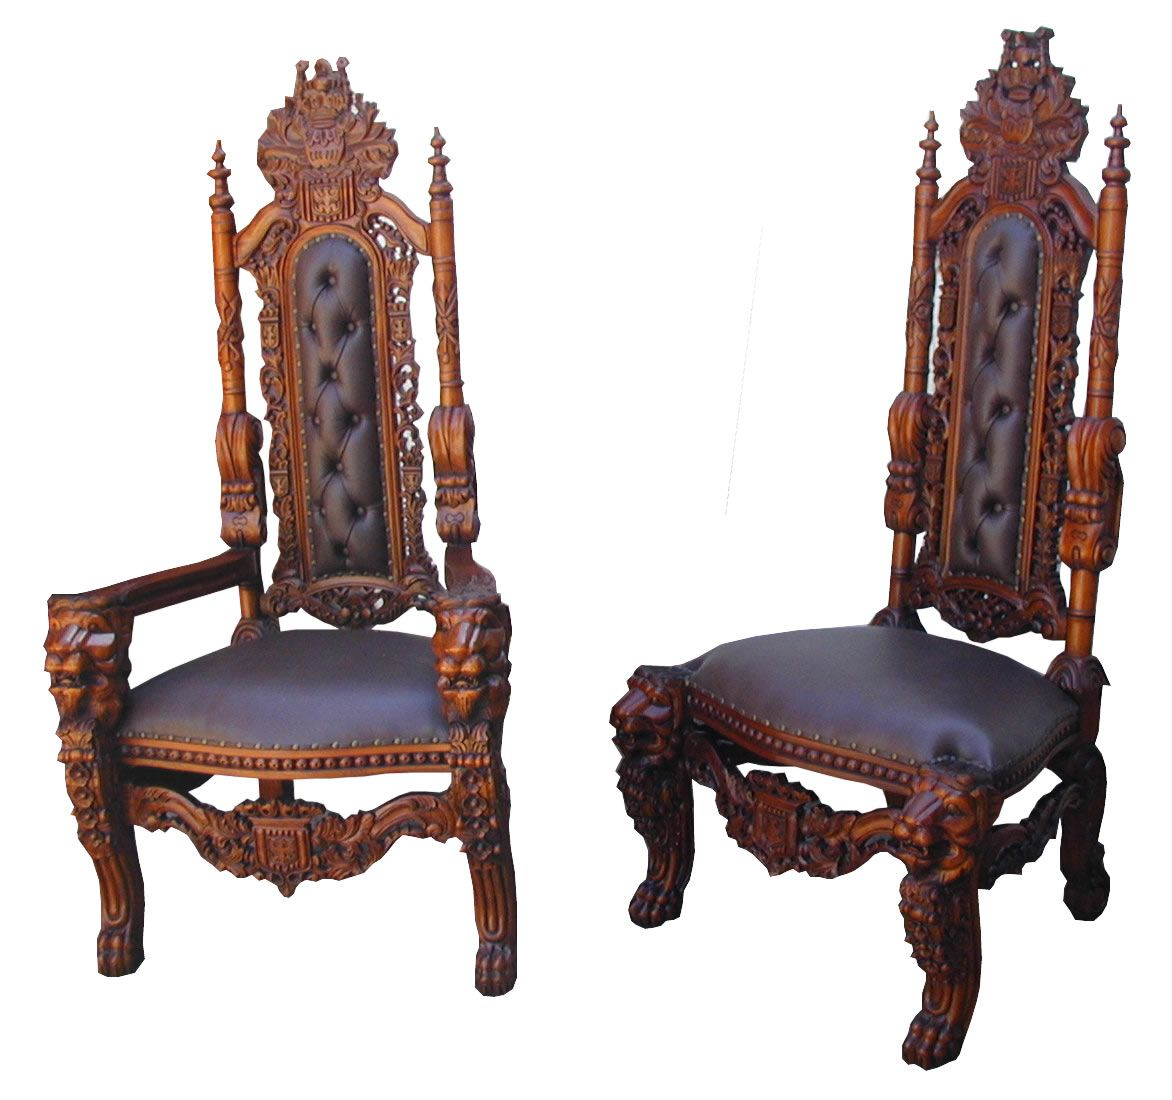 Antique king chair for sale - Gothic Chairs Carved Huge Carved Gothic King  Lion Dining Chair - Antique Gothic Furniture For Sale Antique Furniture